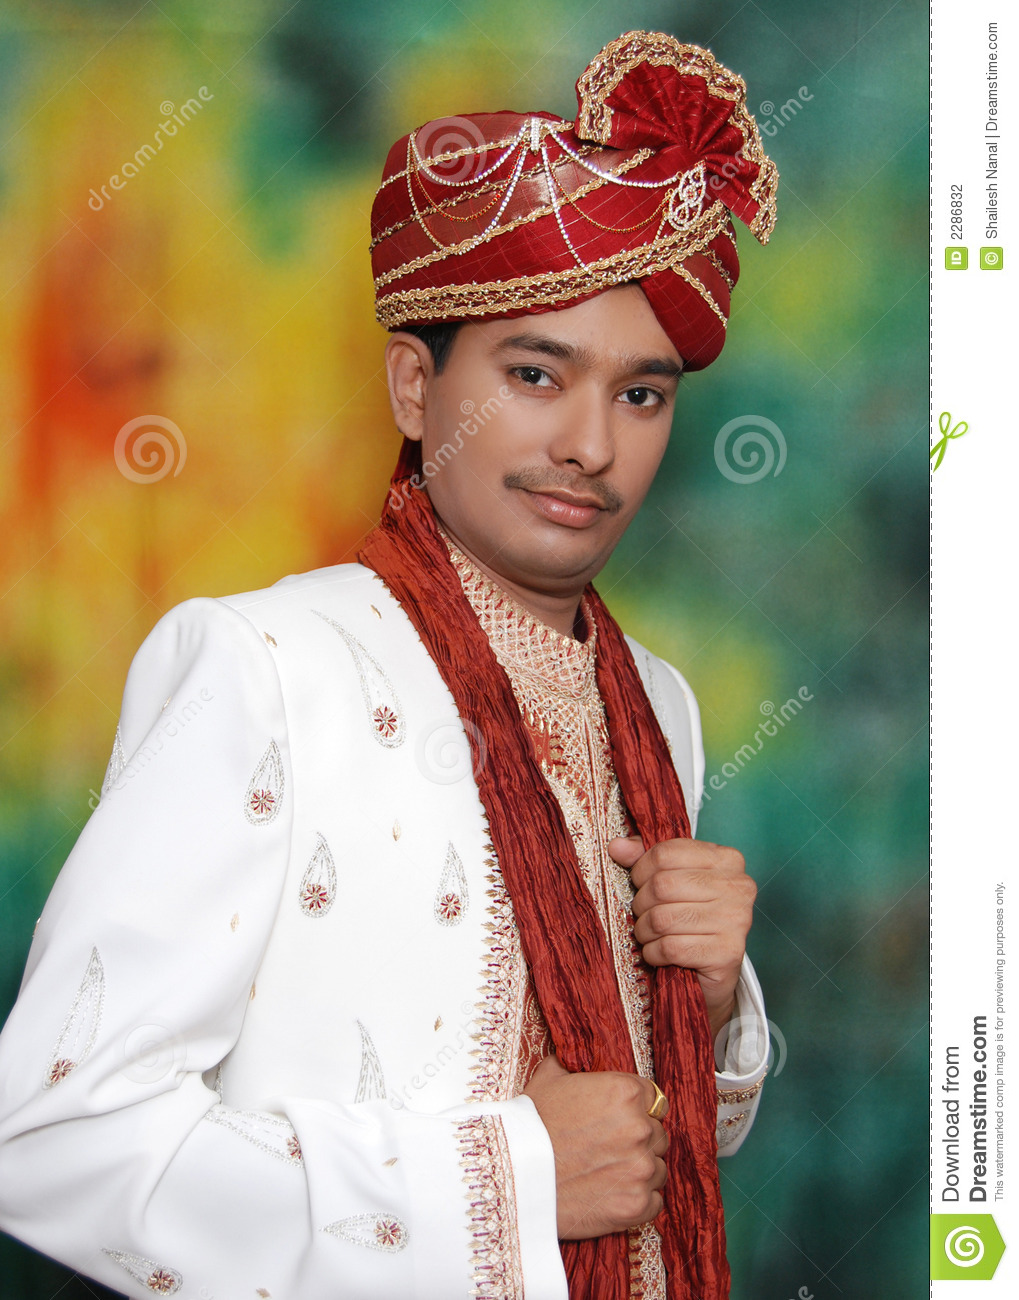 indian prince young dress teenager traditional preview orange dreamstime